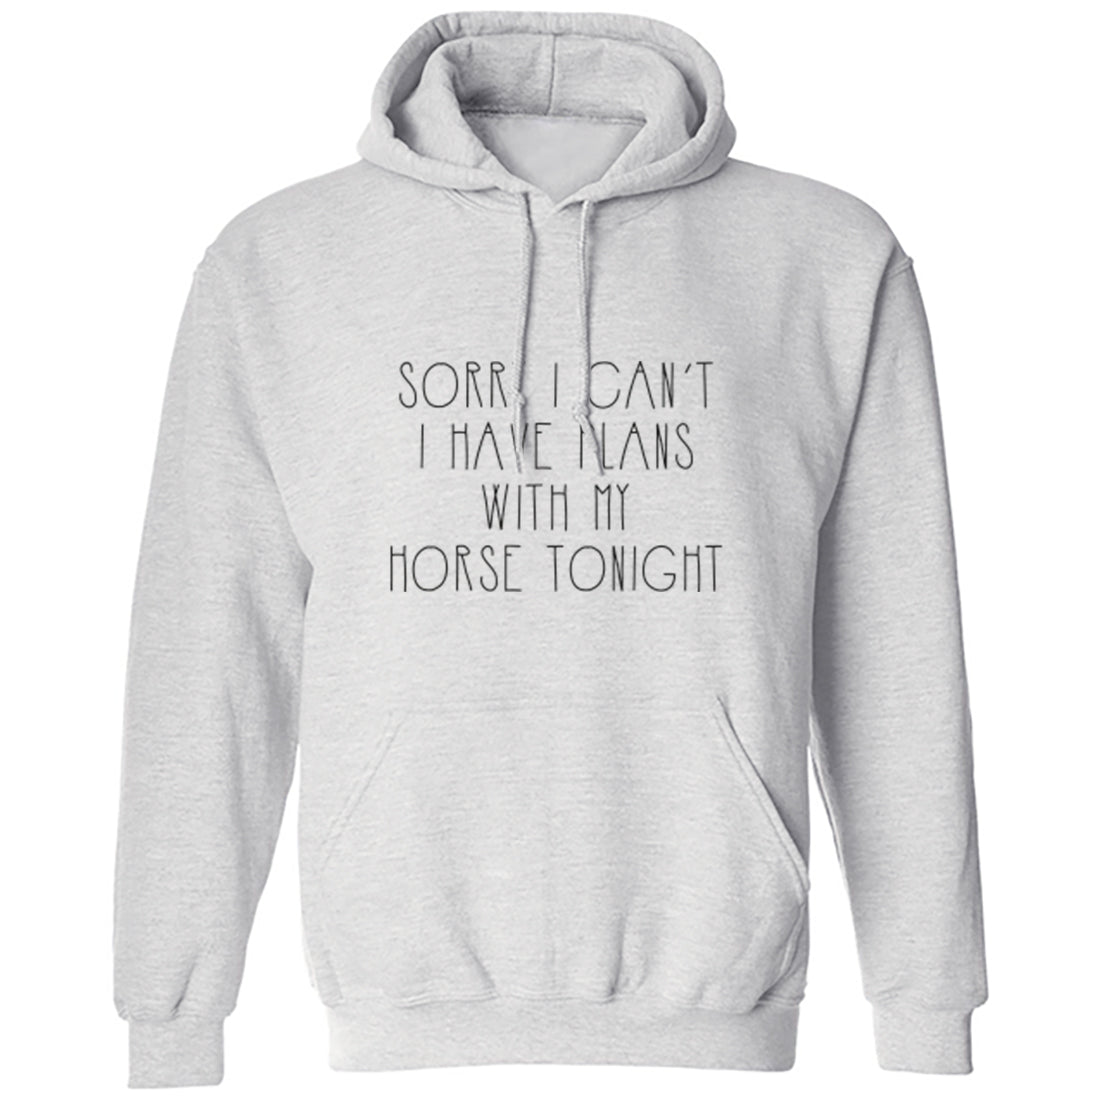 Sorry I Can't Tonight I Have Plans With My Horse Unisex Hoodie K1283 - Illustrated Identity Ltd.